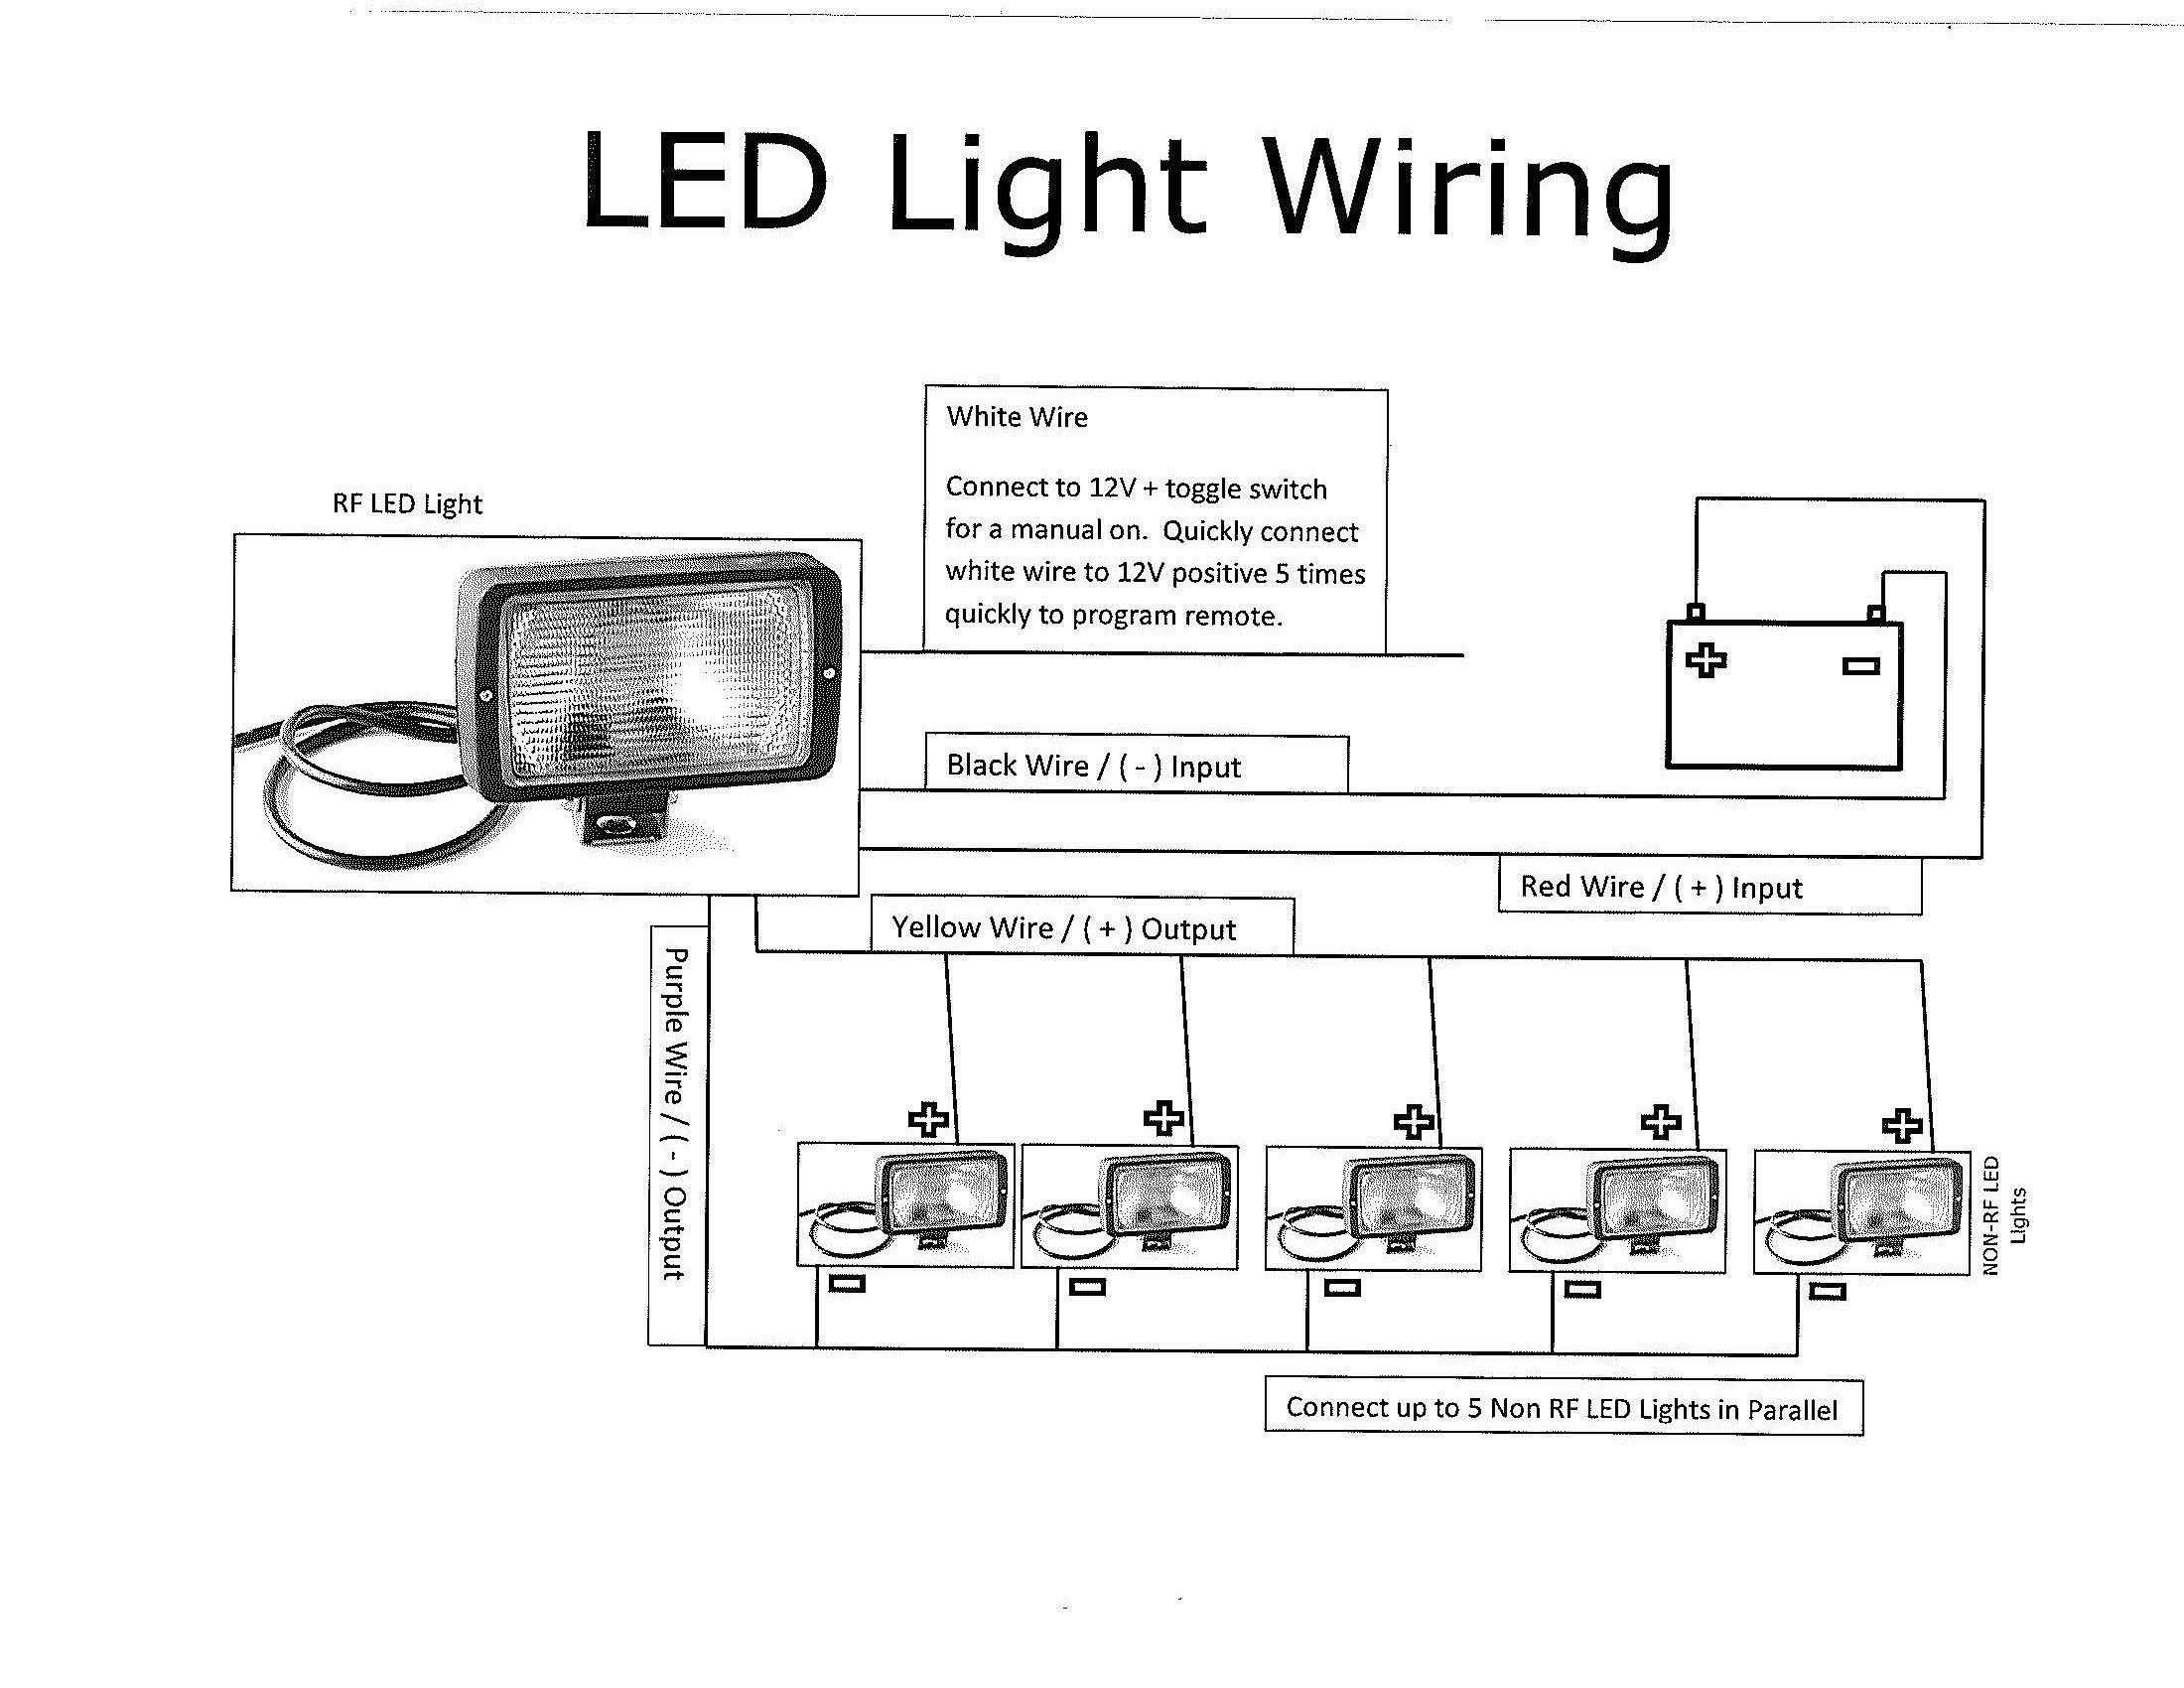 Fantastic Wiring Diagram For 4 Lights With One Switch Wiring Diagram Database Wiring Digital Resources Indicompassionincorg